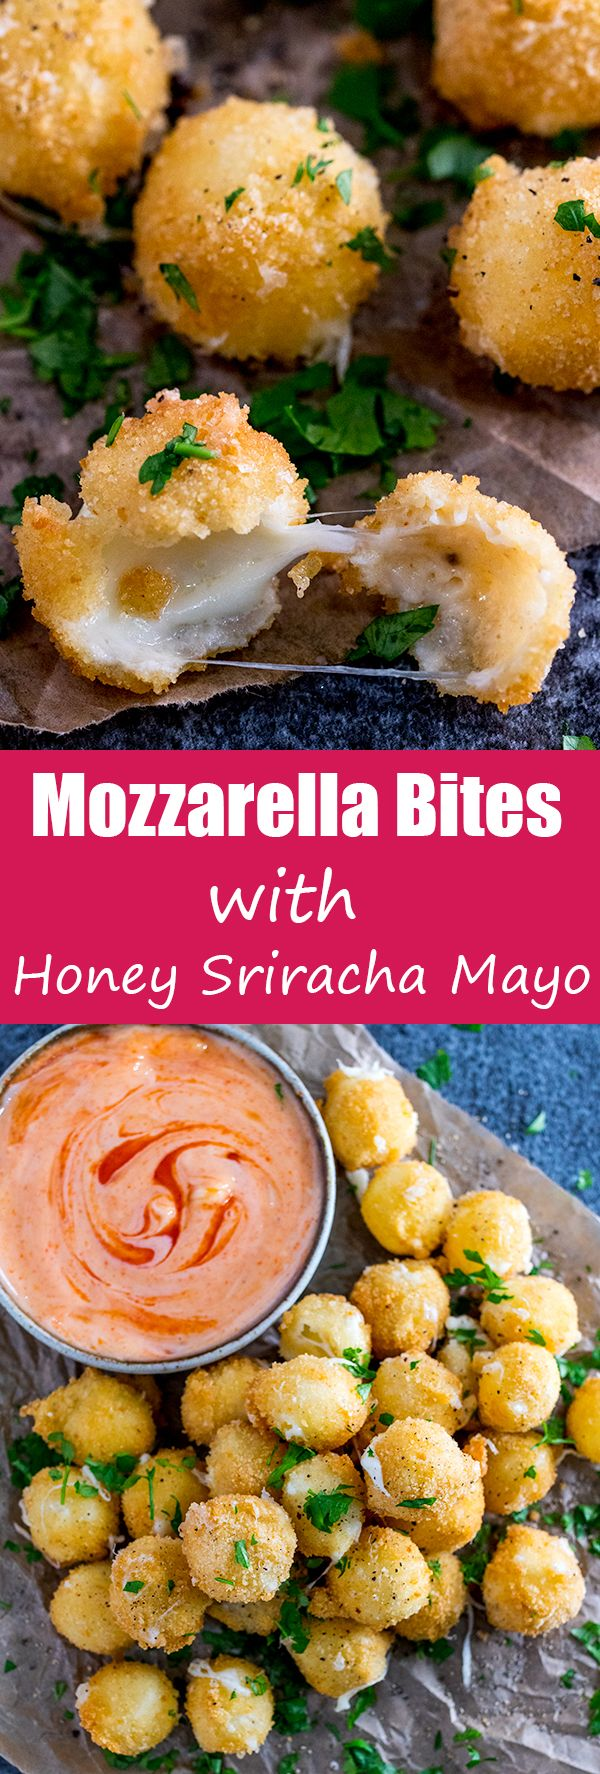 Make these CRISPY MOZZARELLA BITES with HONEY SRIRACHA MAYO for parties, game day or an awesome snack time treat!